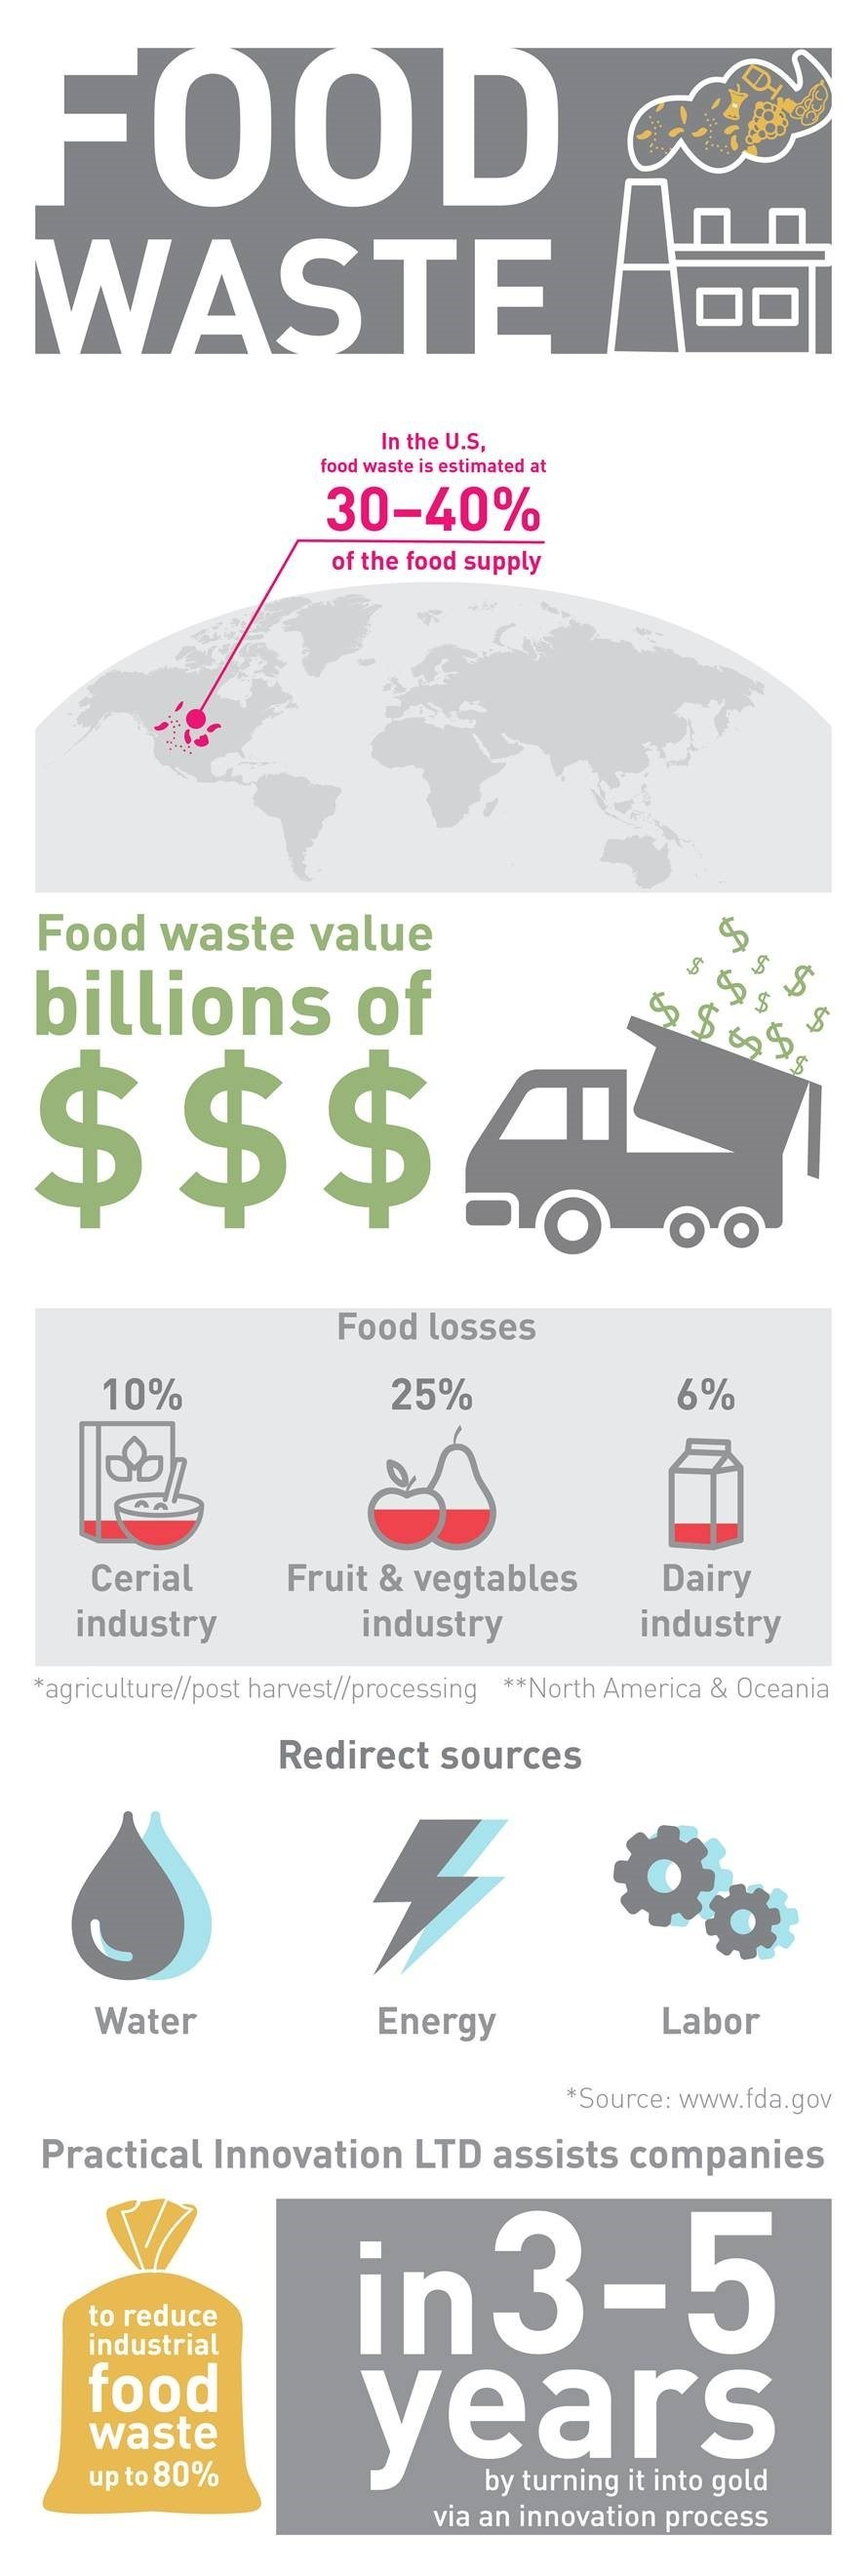 Liat_Practical_Inovation_Foodwaste_infographic